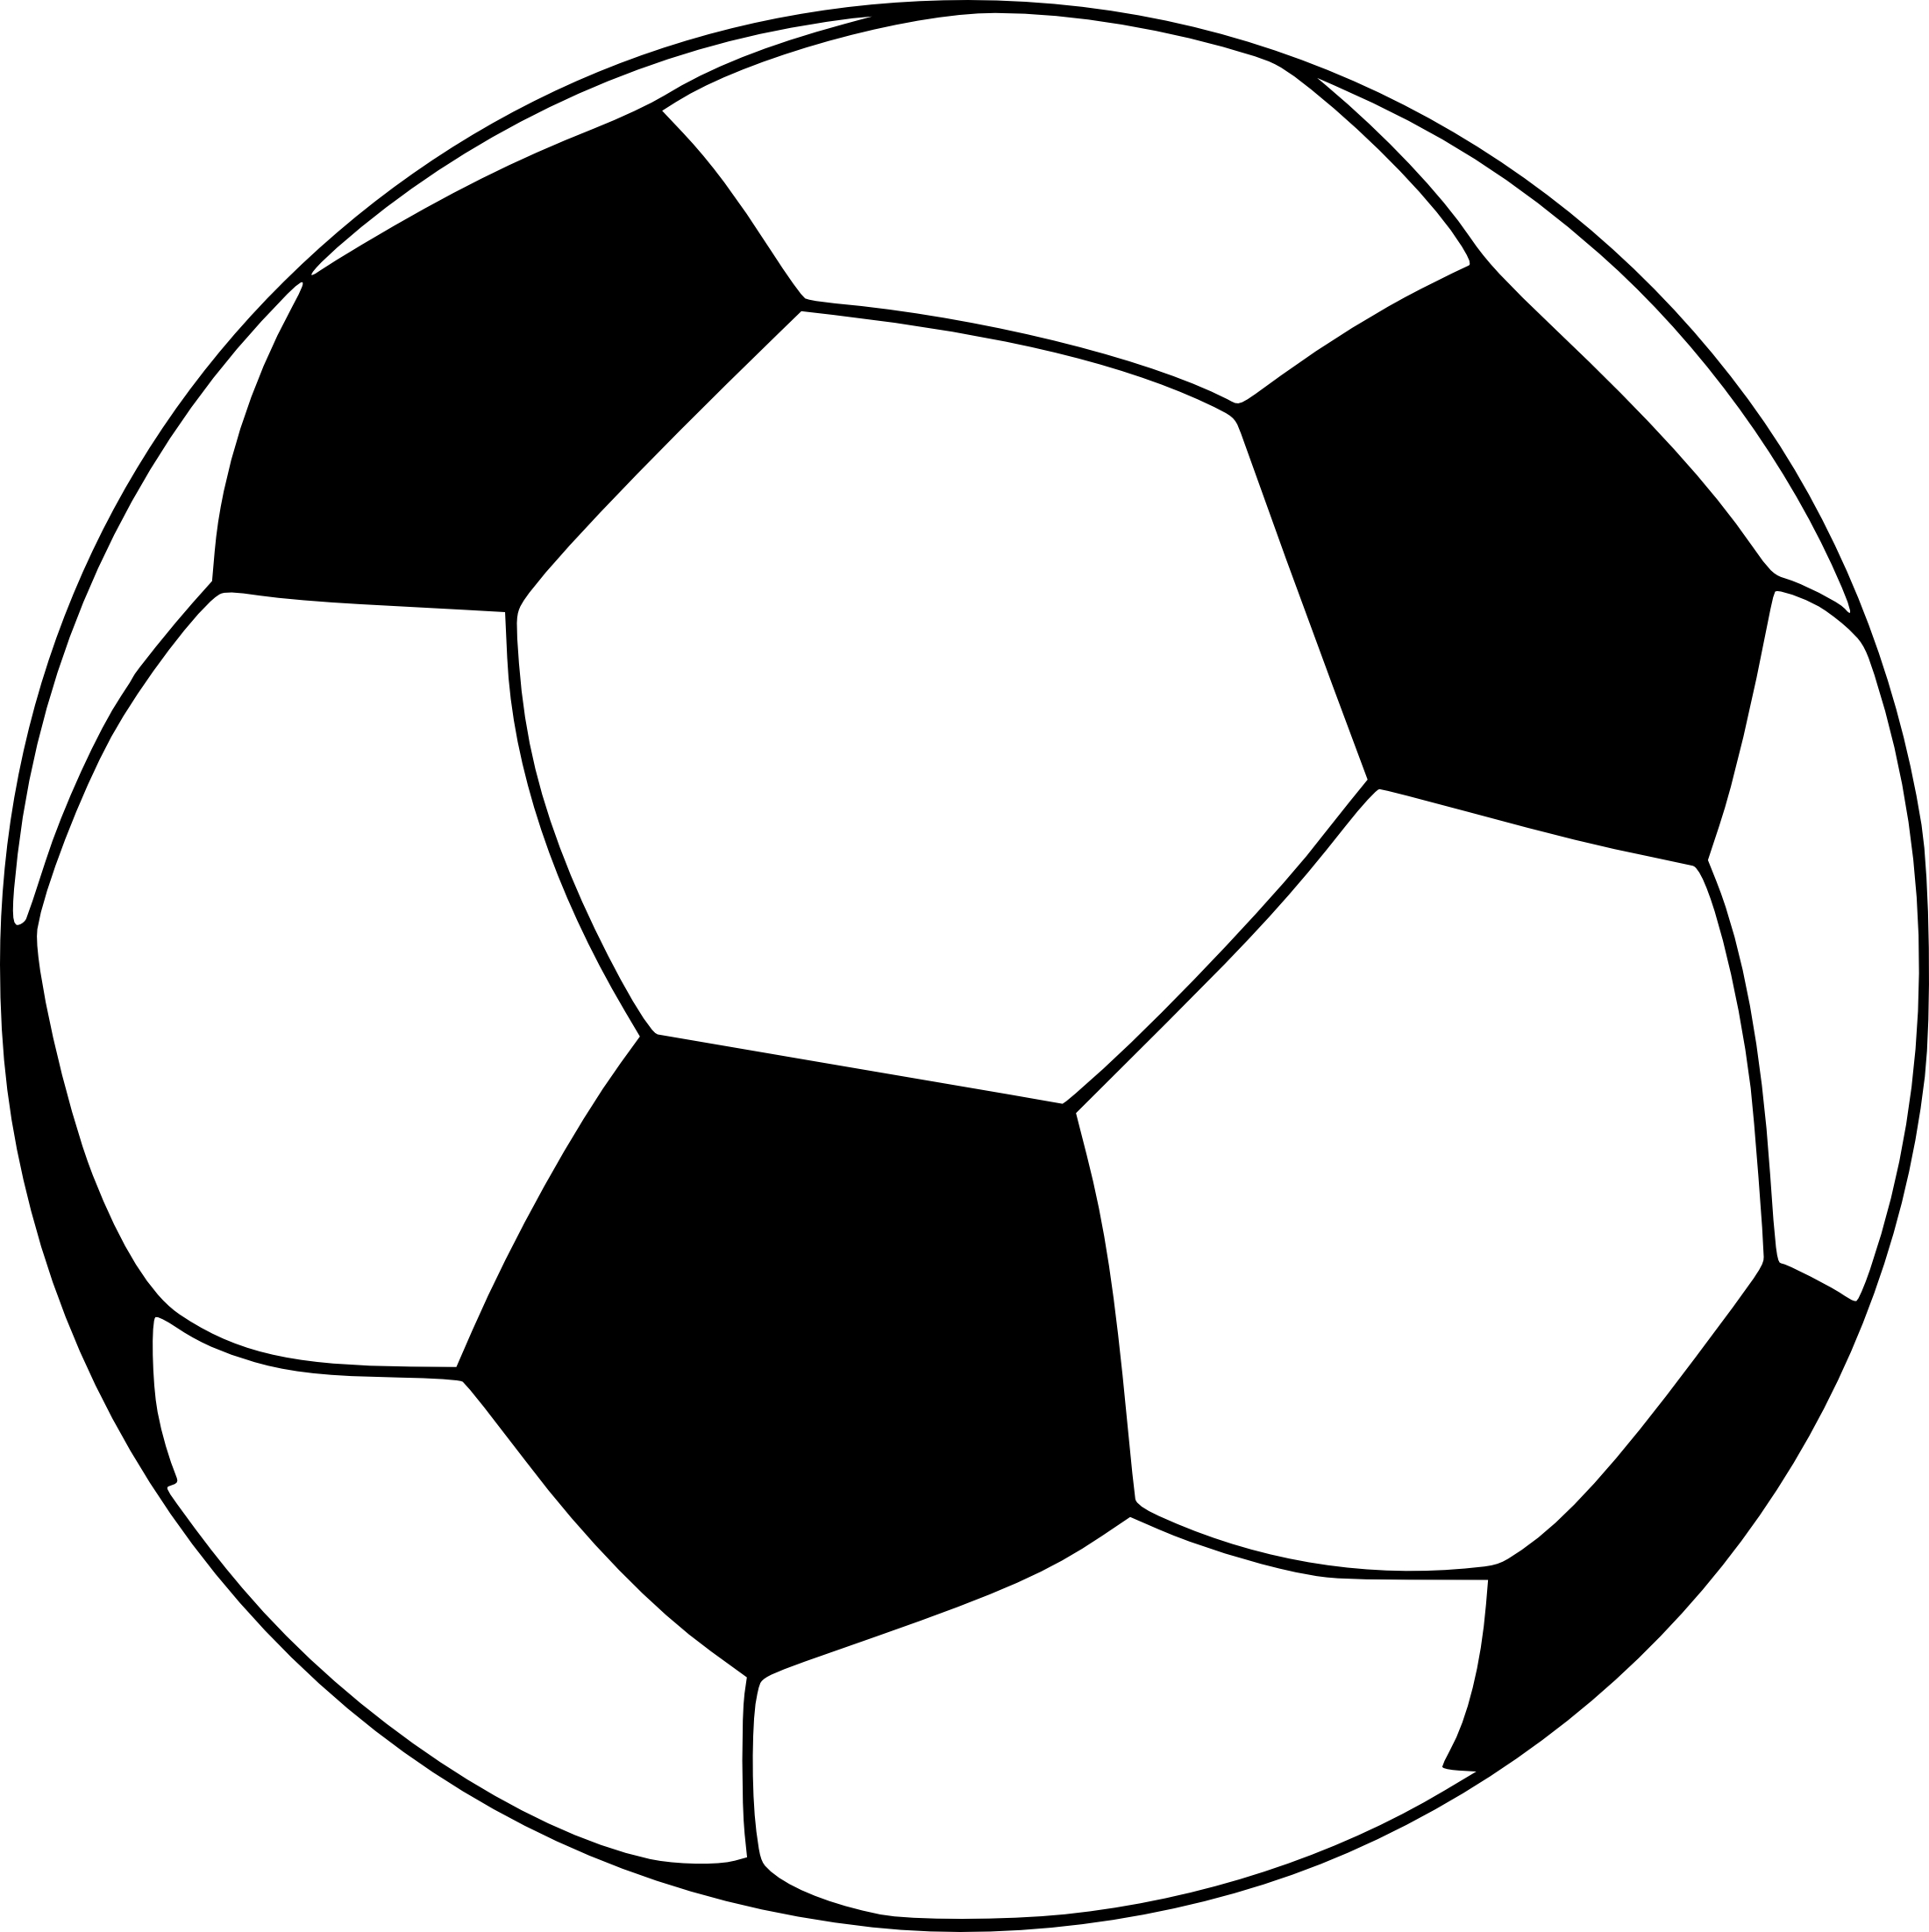 Coloriage ballon de football imprimer - Coloriage ballon foot ...